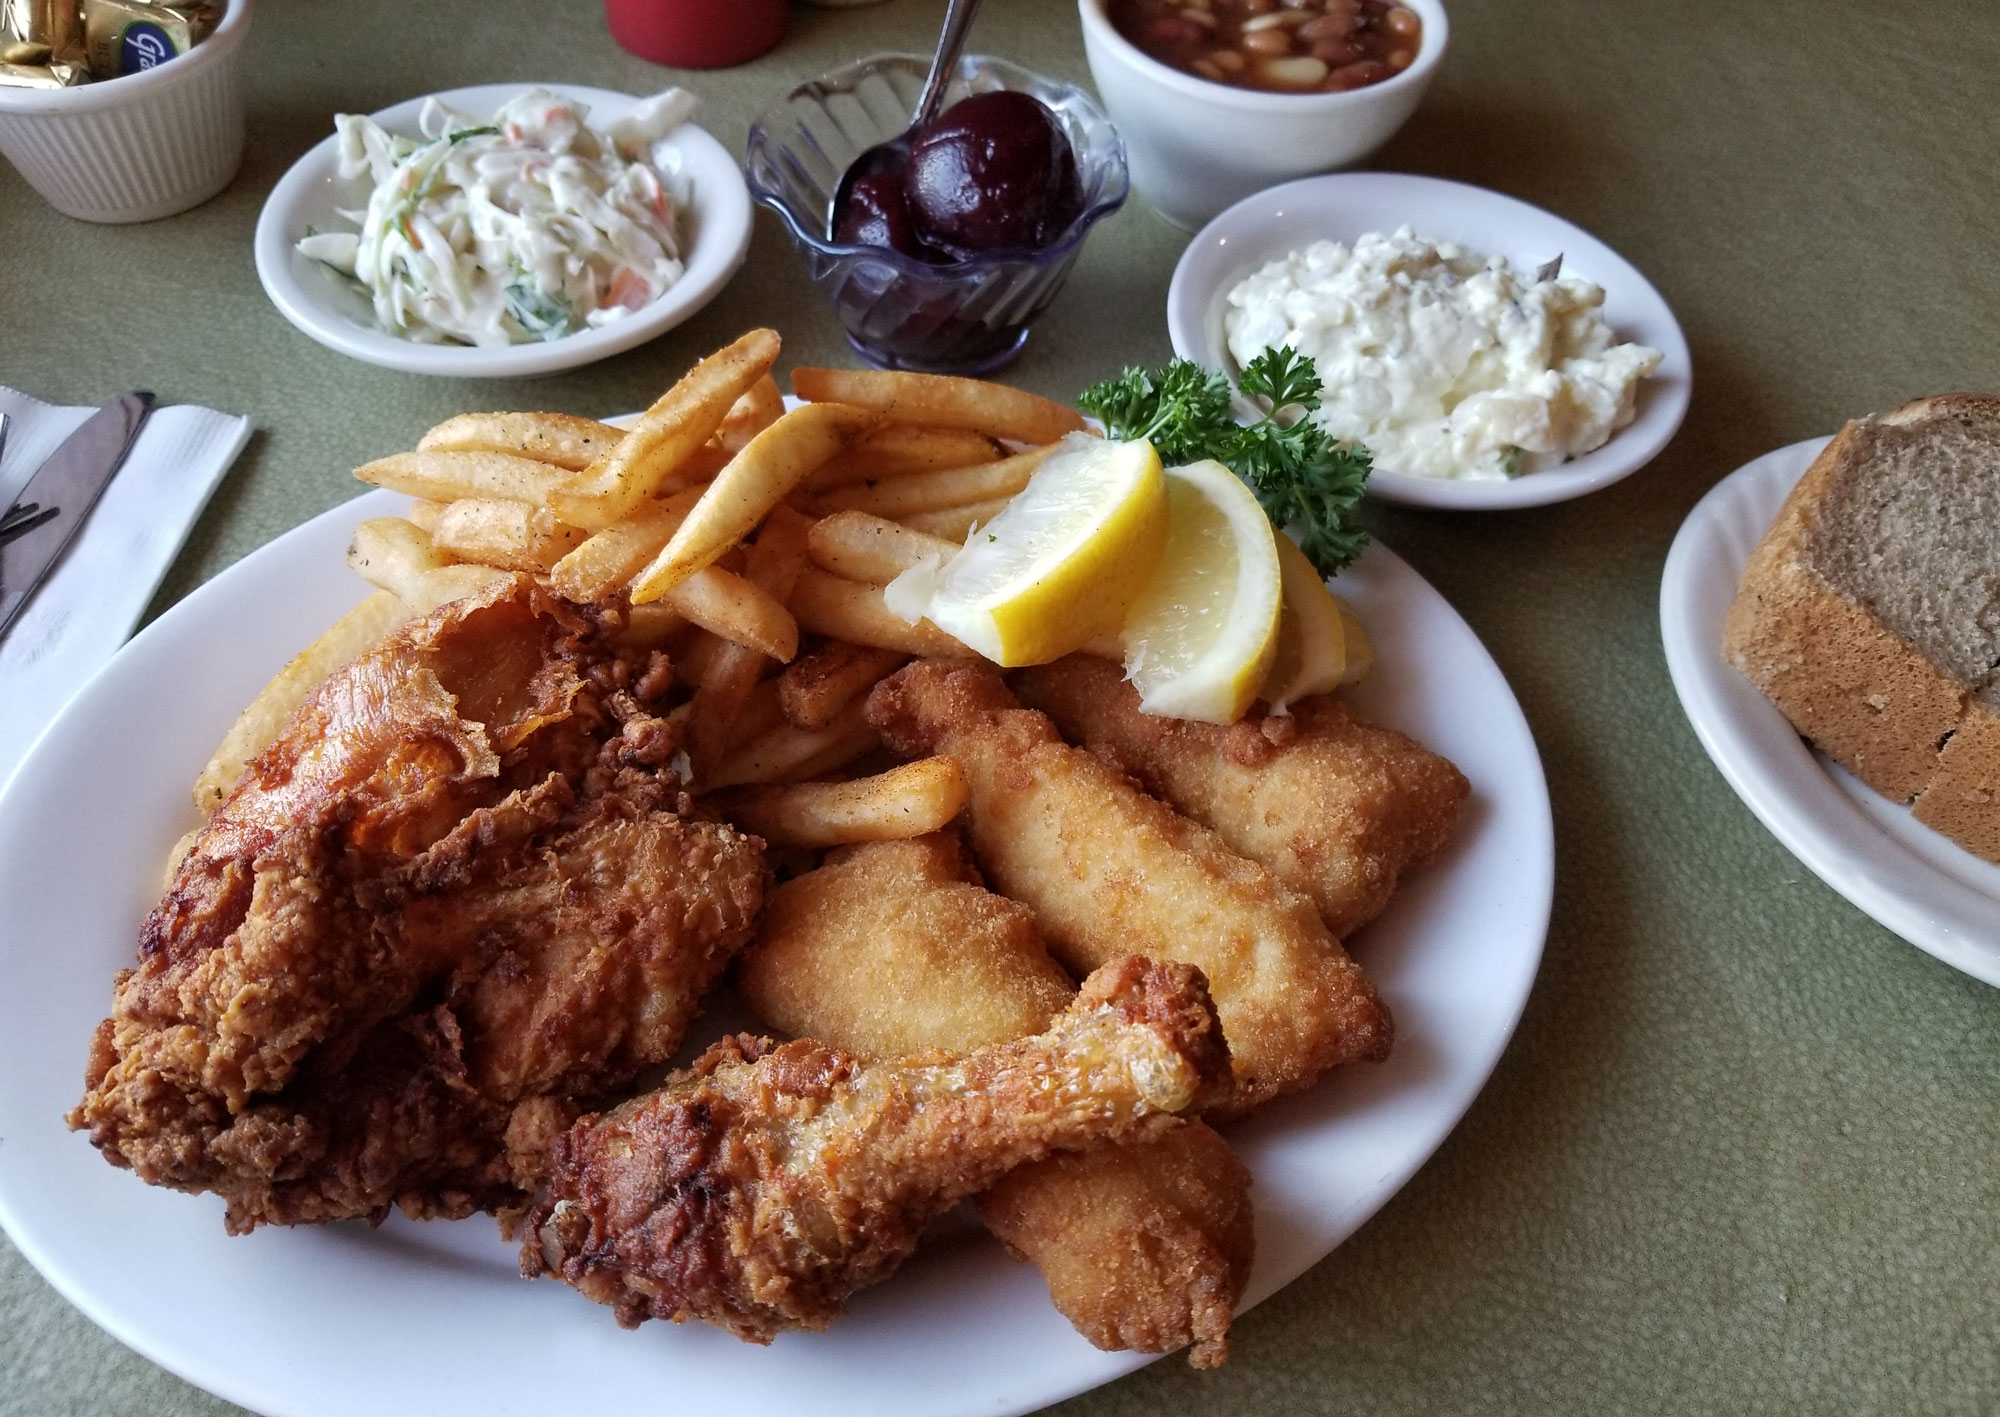 Donny's Girl Supper Club serves Wisconsin's finest Friday fish fry!